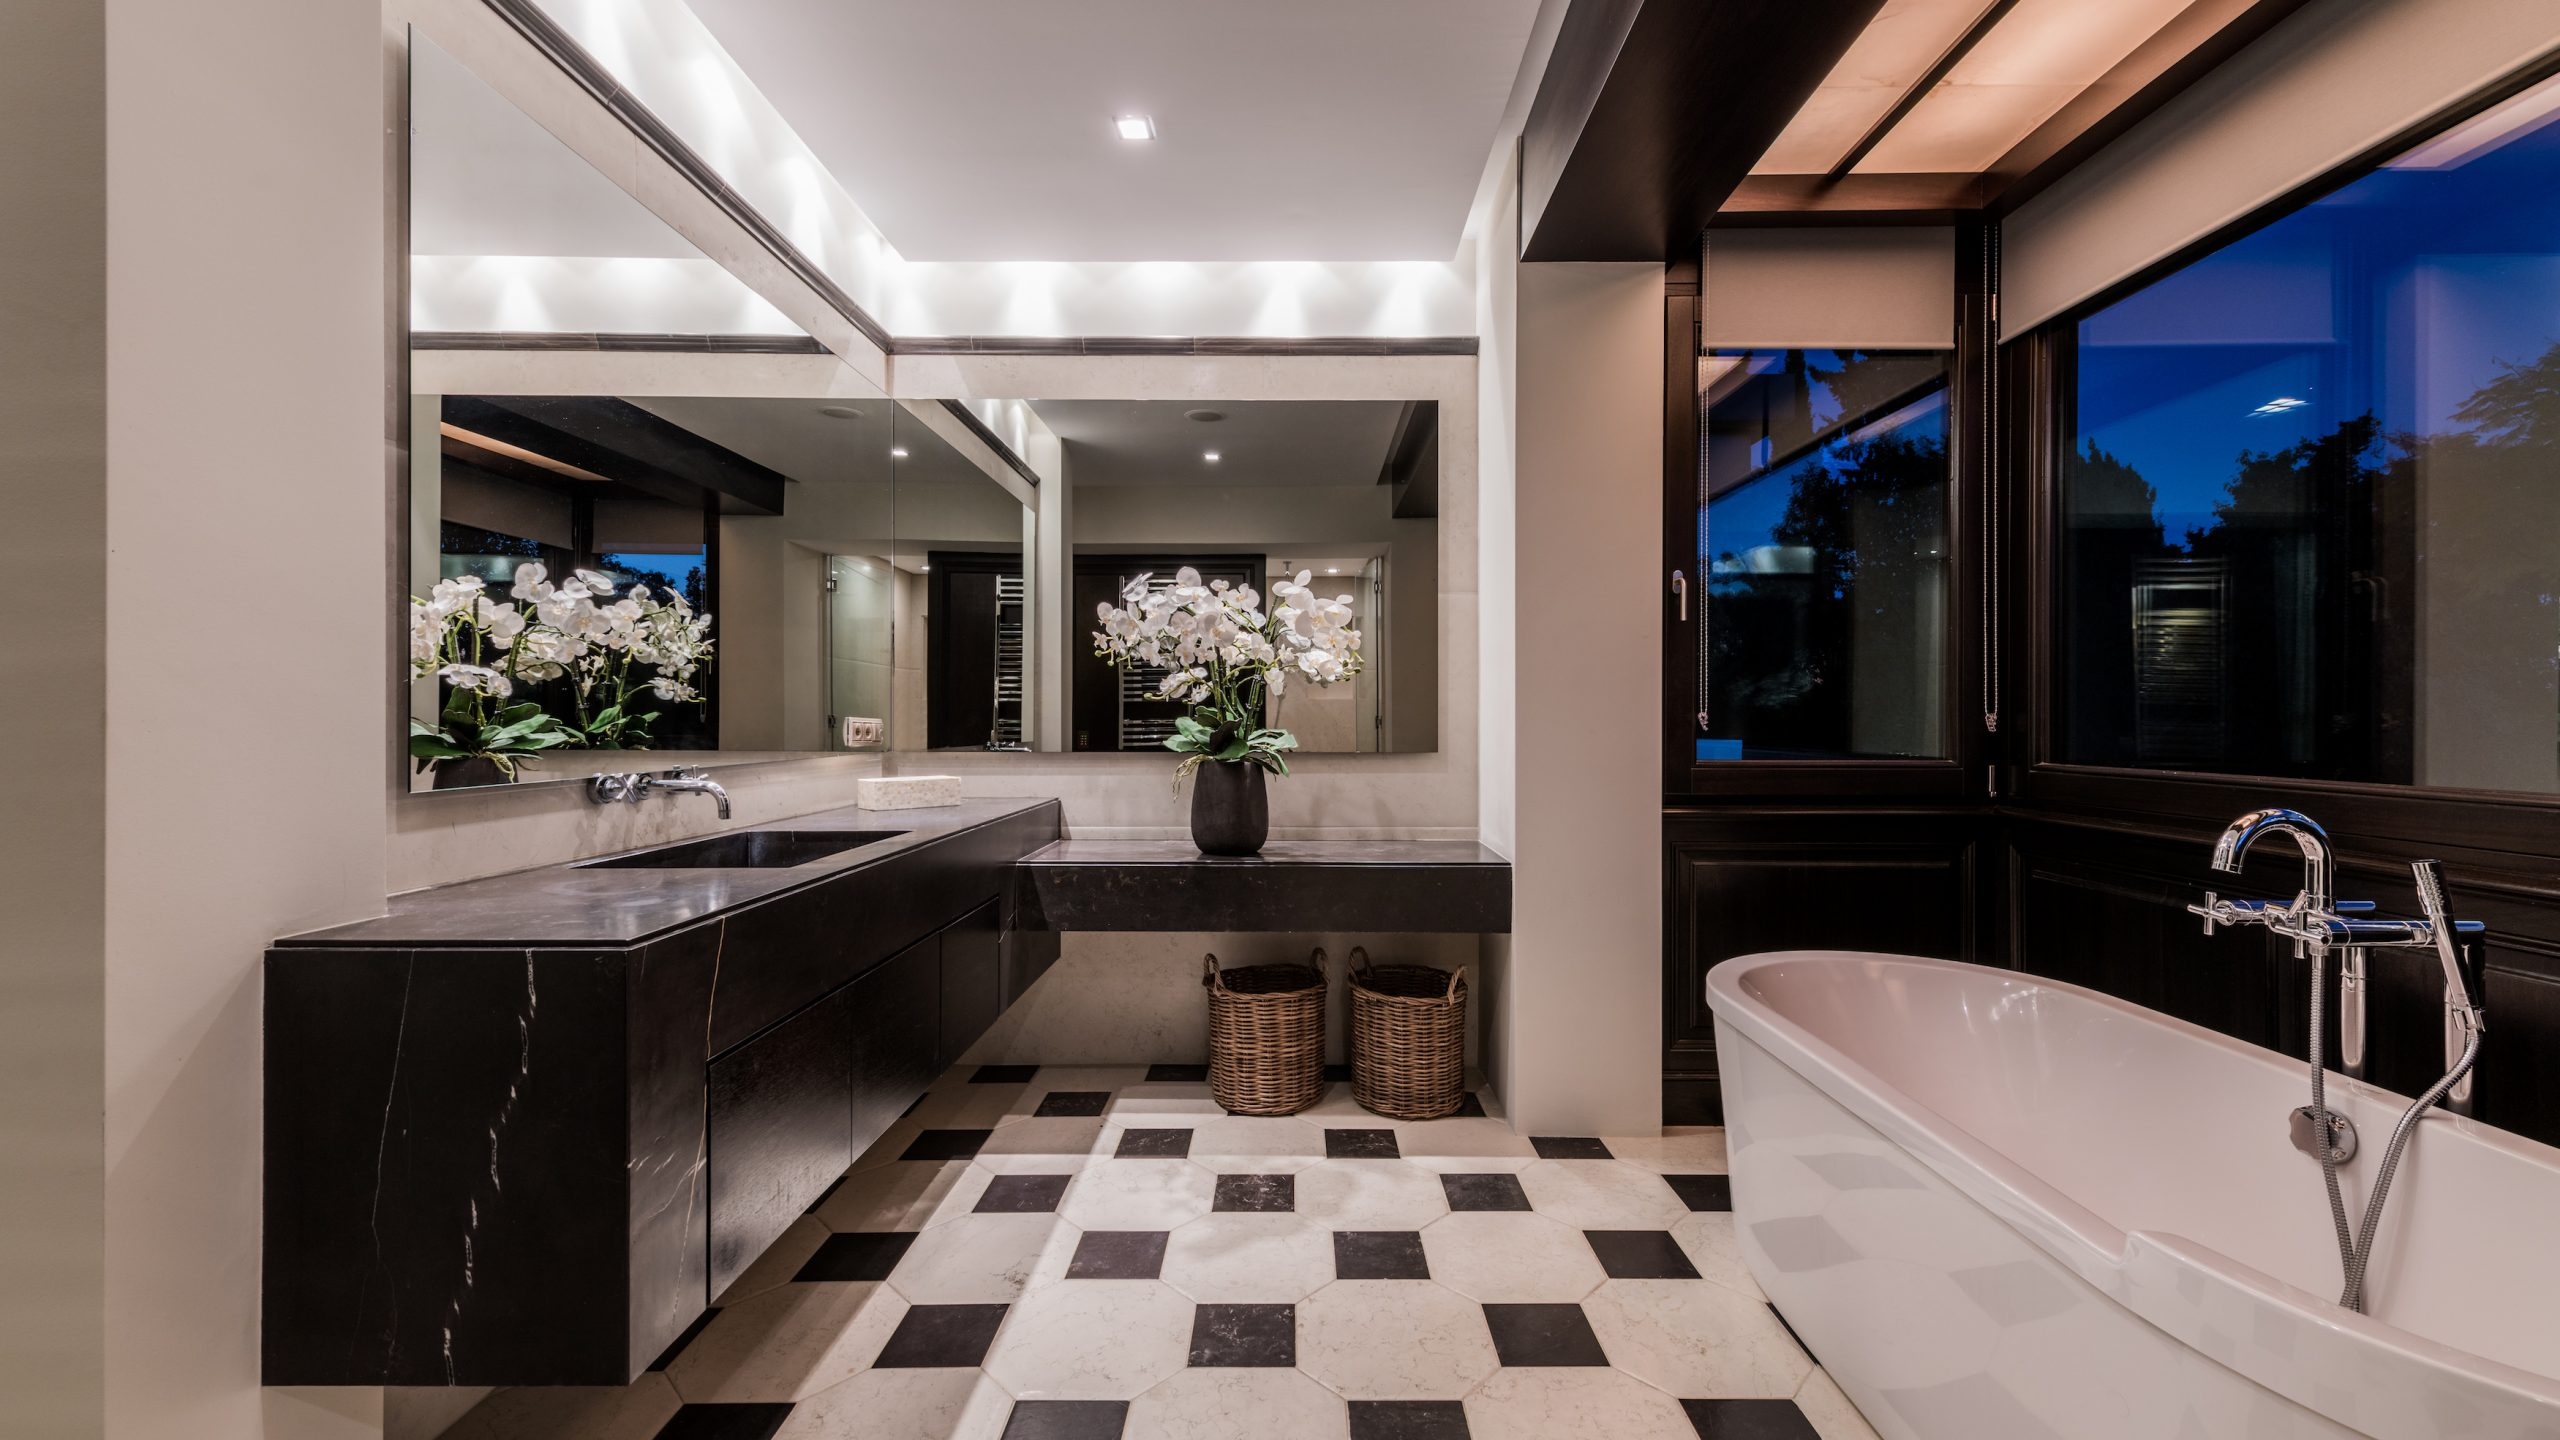 Design and stylish bathroom Marbella